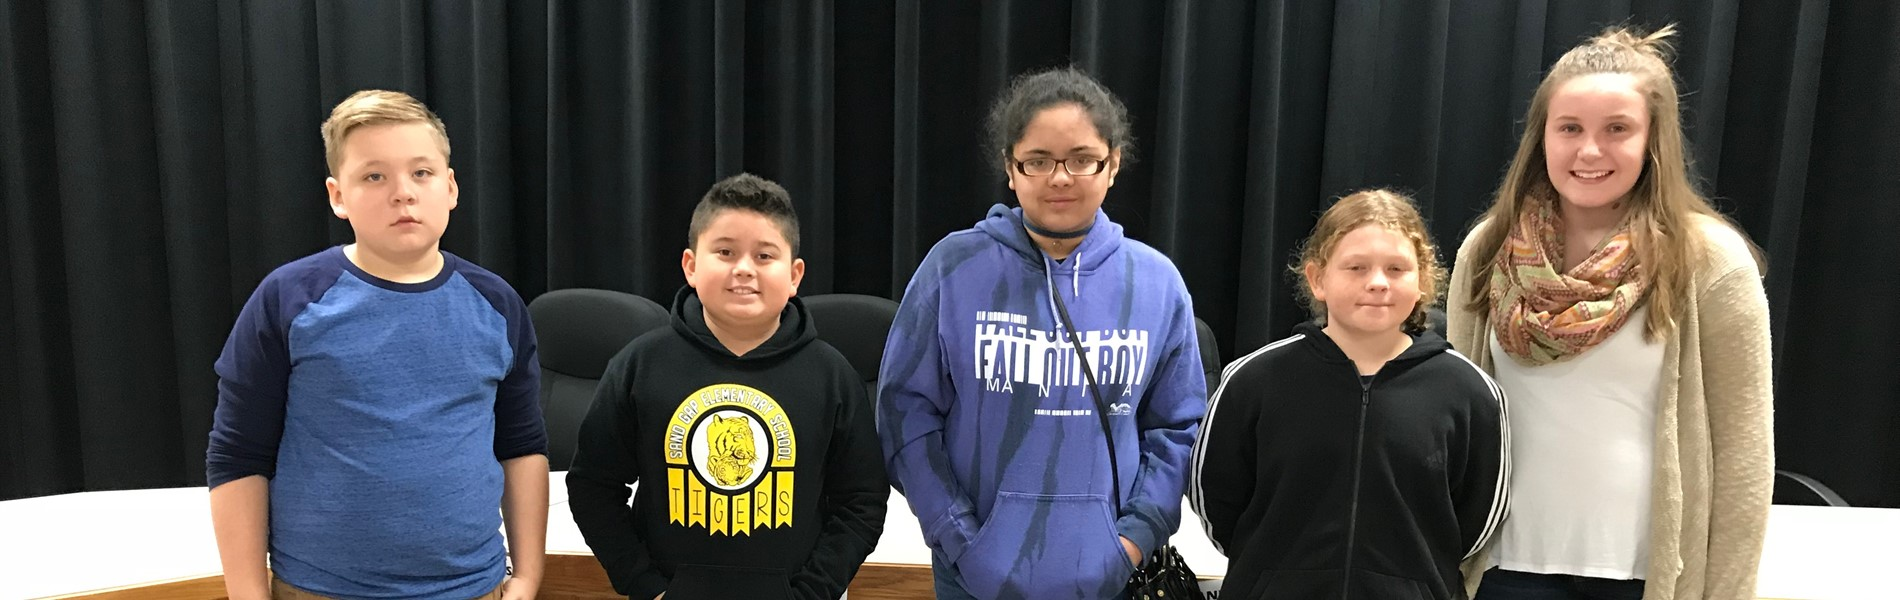 STLP County Spelling Bee Winners